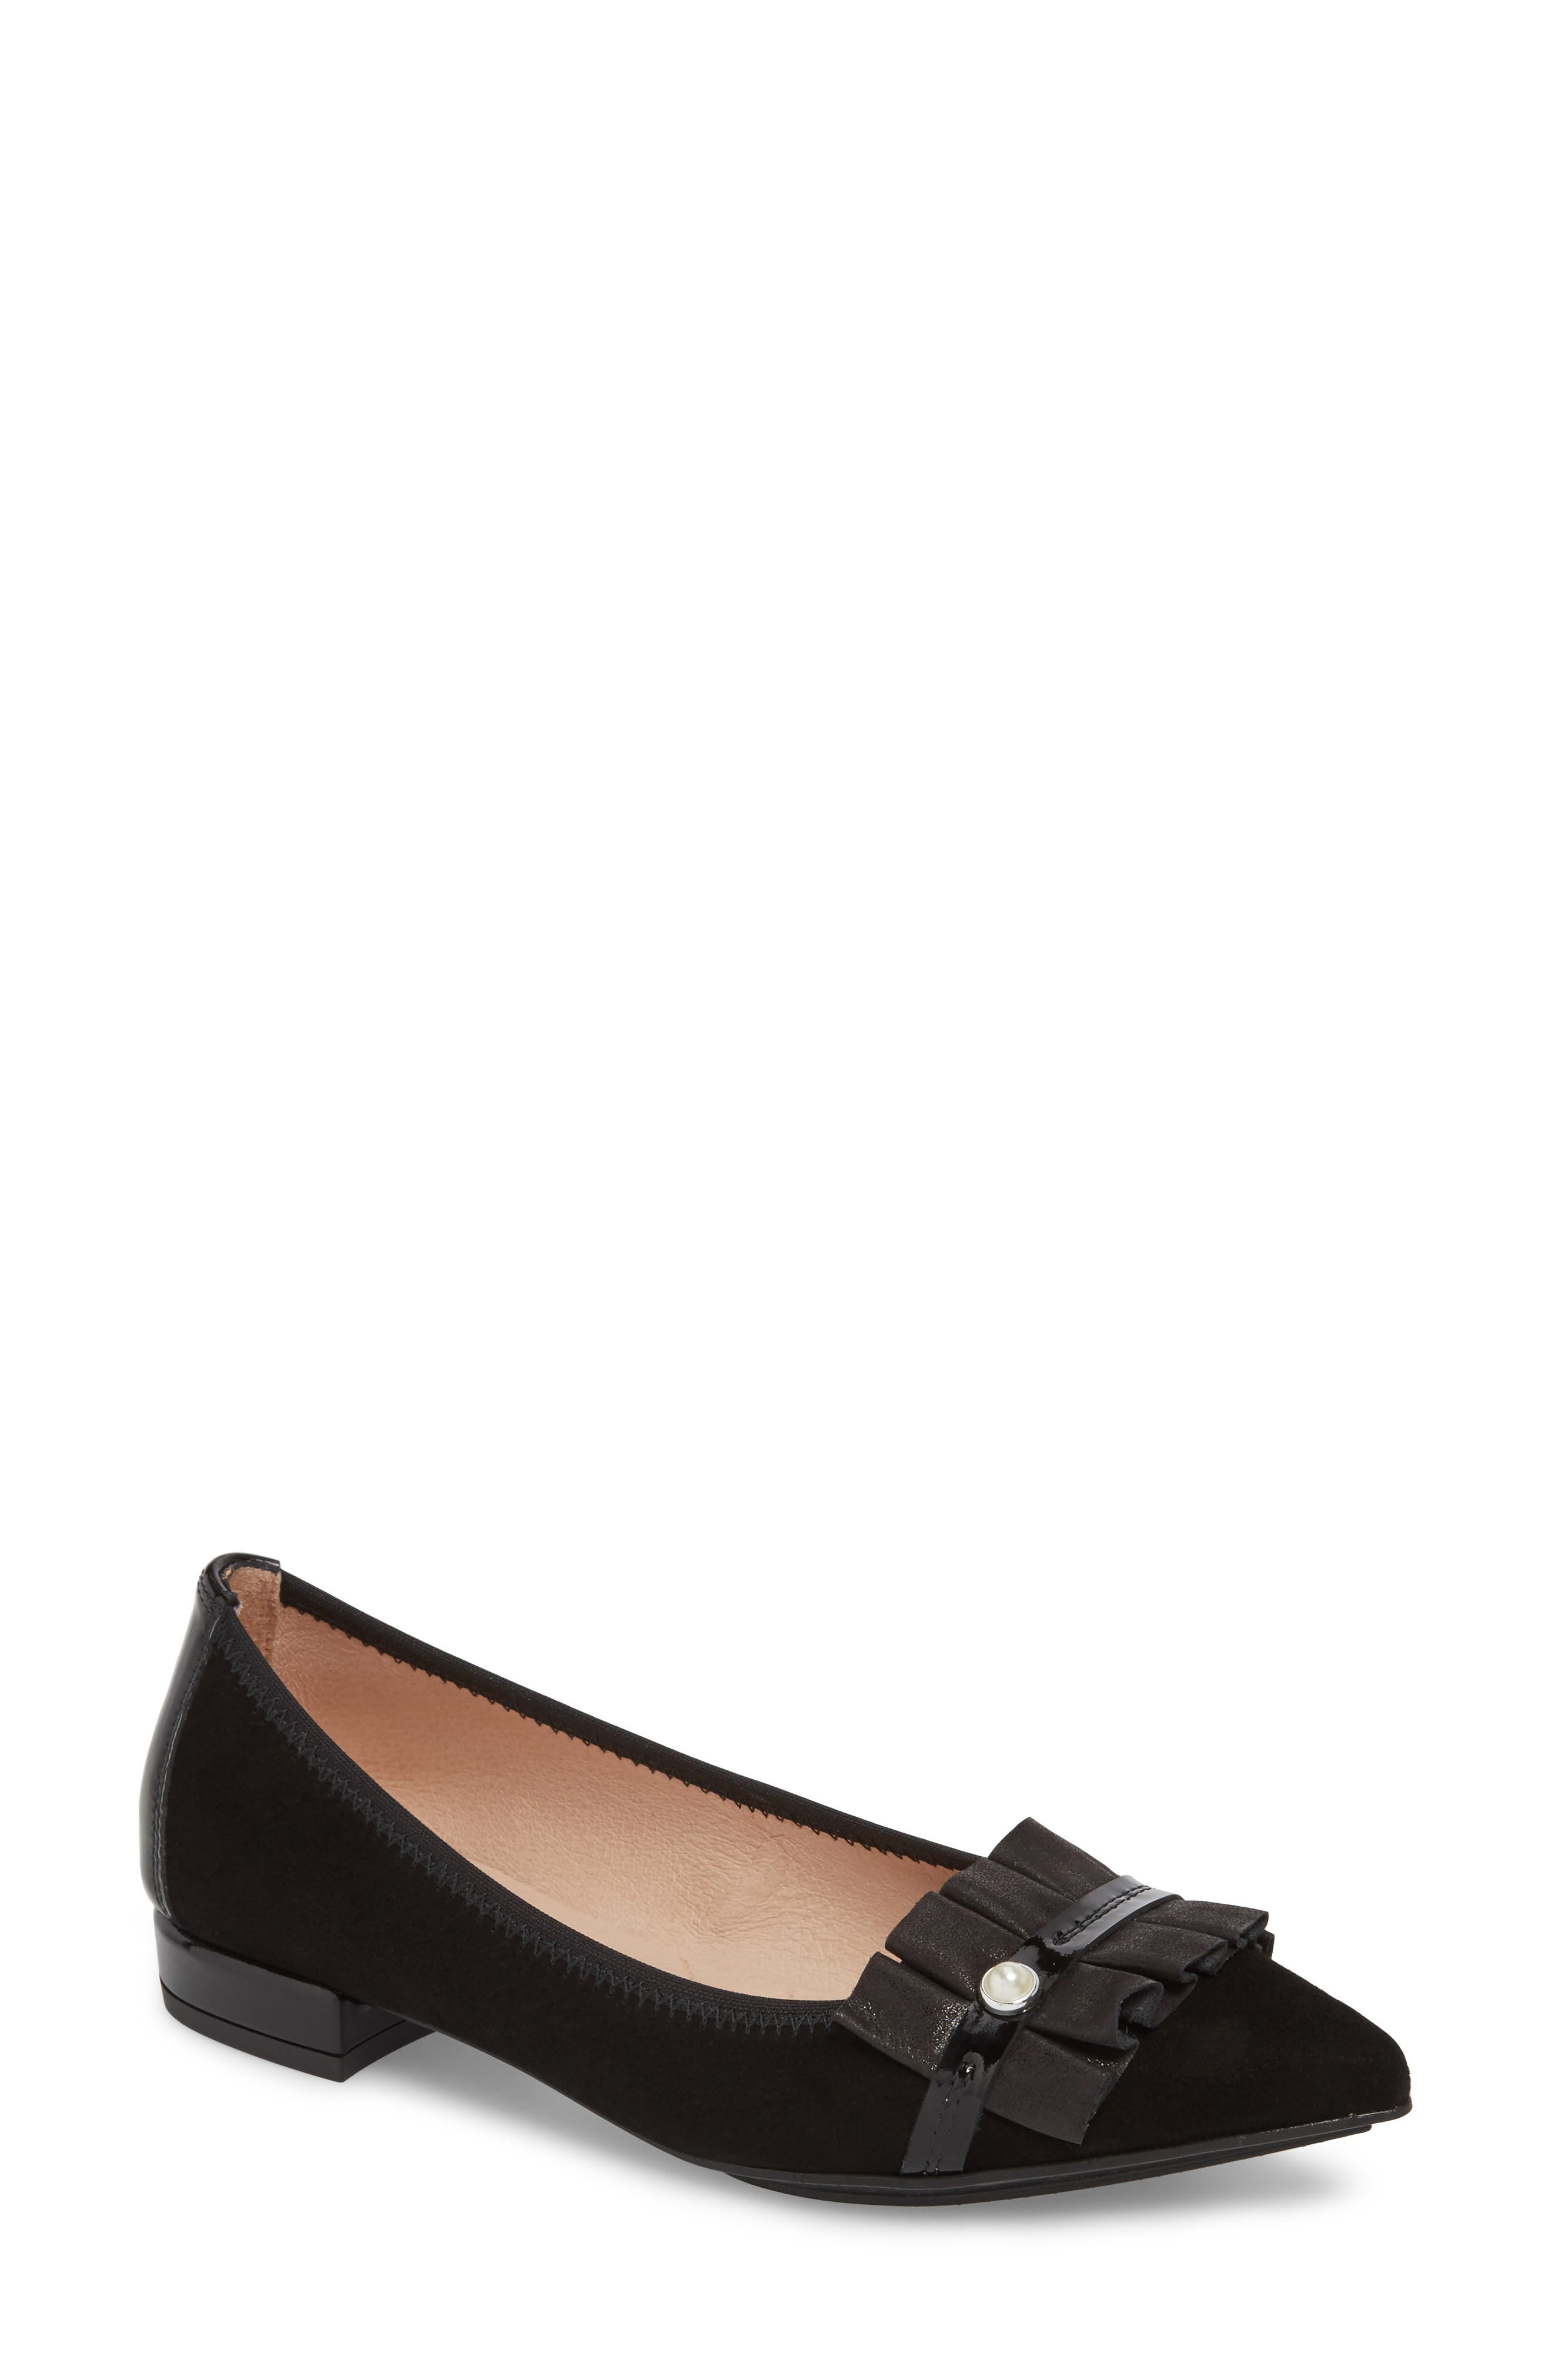 Yvette Flat,                             Main thumbnail 1, color,                             Ante Black Leather